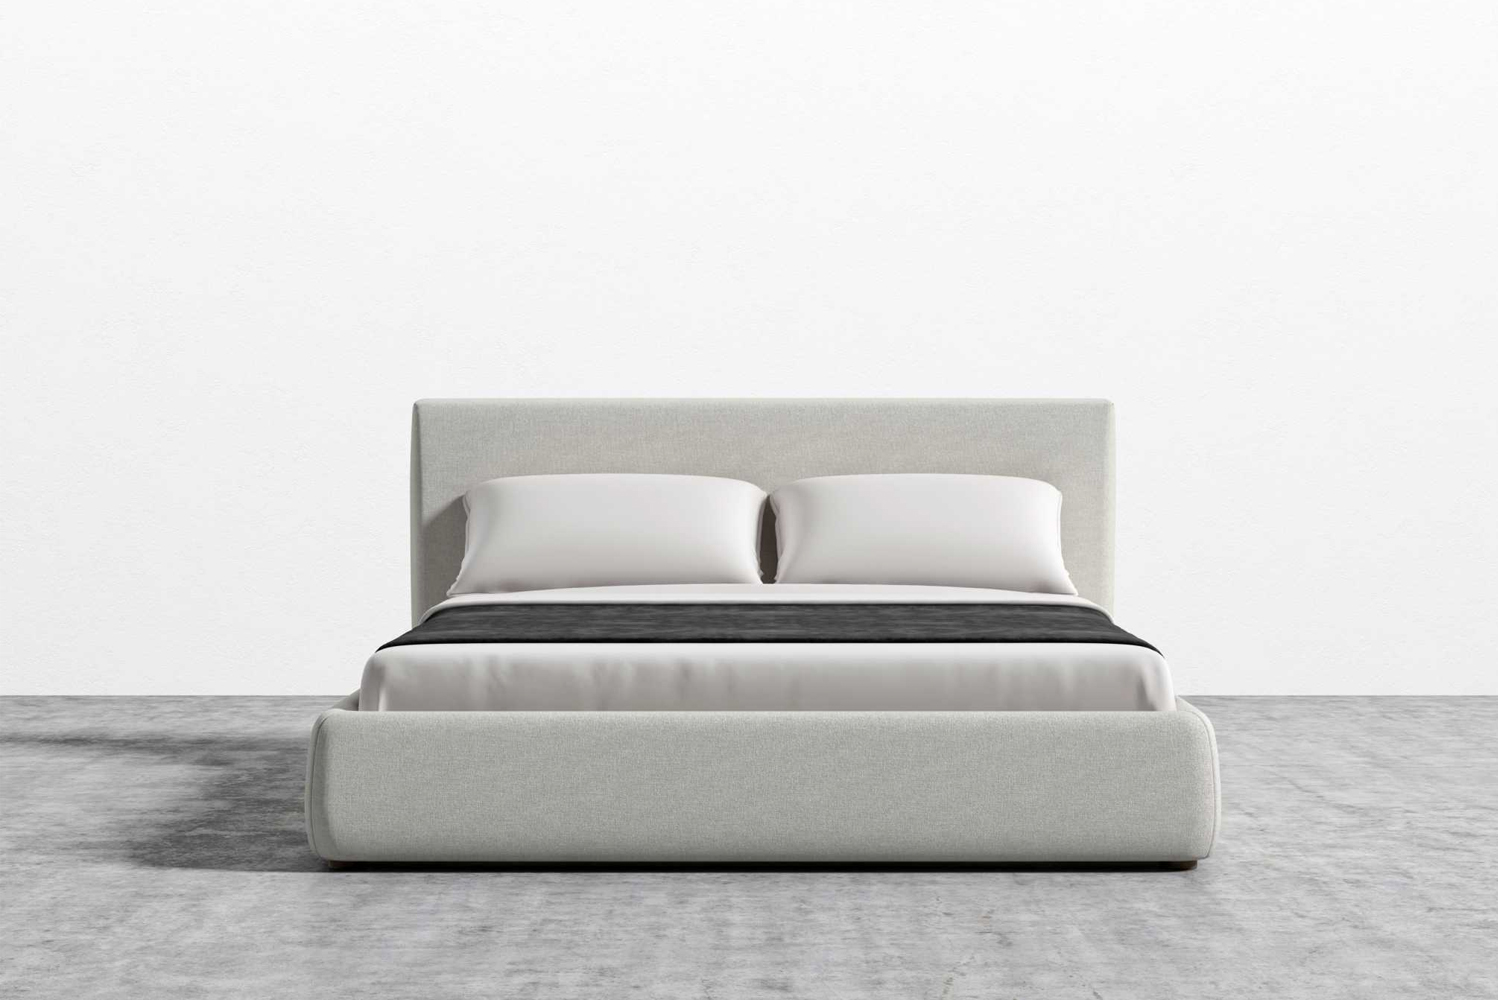 Rove Concepts announced the Ophelia, a bed frame with smooth upholstery, plush cushioning, and rounded edges.